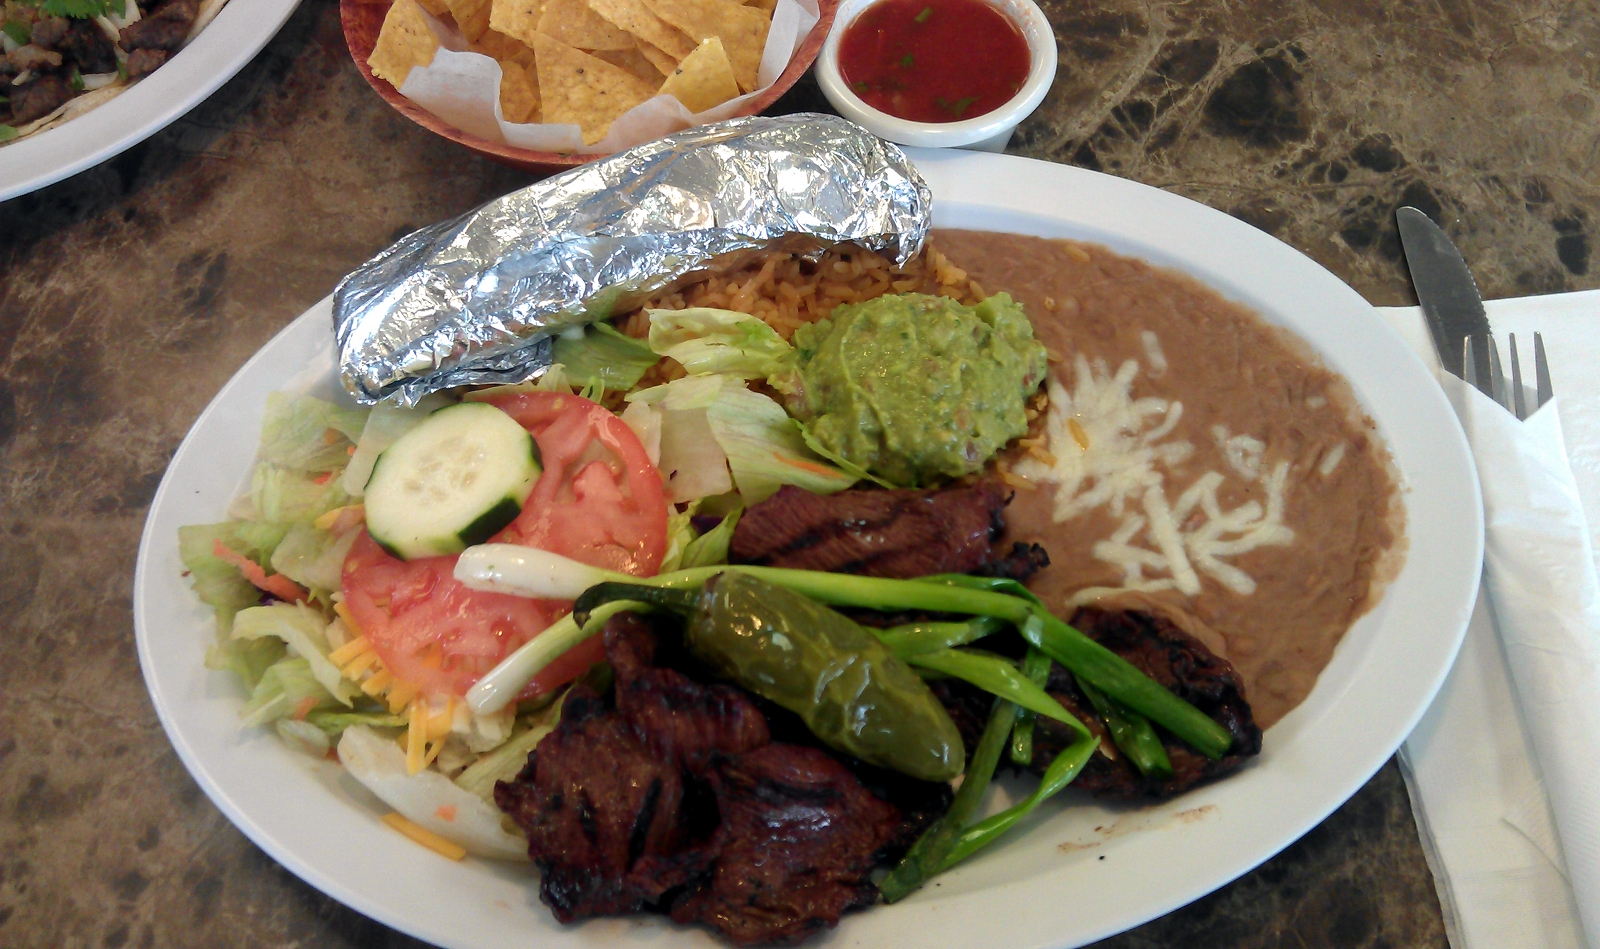 Taqueria El Antojo: Taqueria El Antojo (3801 E McKinley Ave) has the combination of quality Mexican food that is both affordably priced and served incredibly fast. Enjoy an entree like carnitas or carne asada with fresh-made tortillas, and top off your meal at their colorful salsa bar.